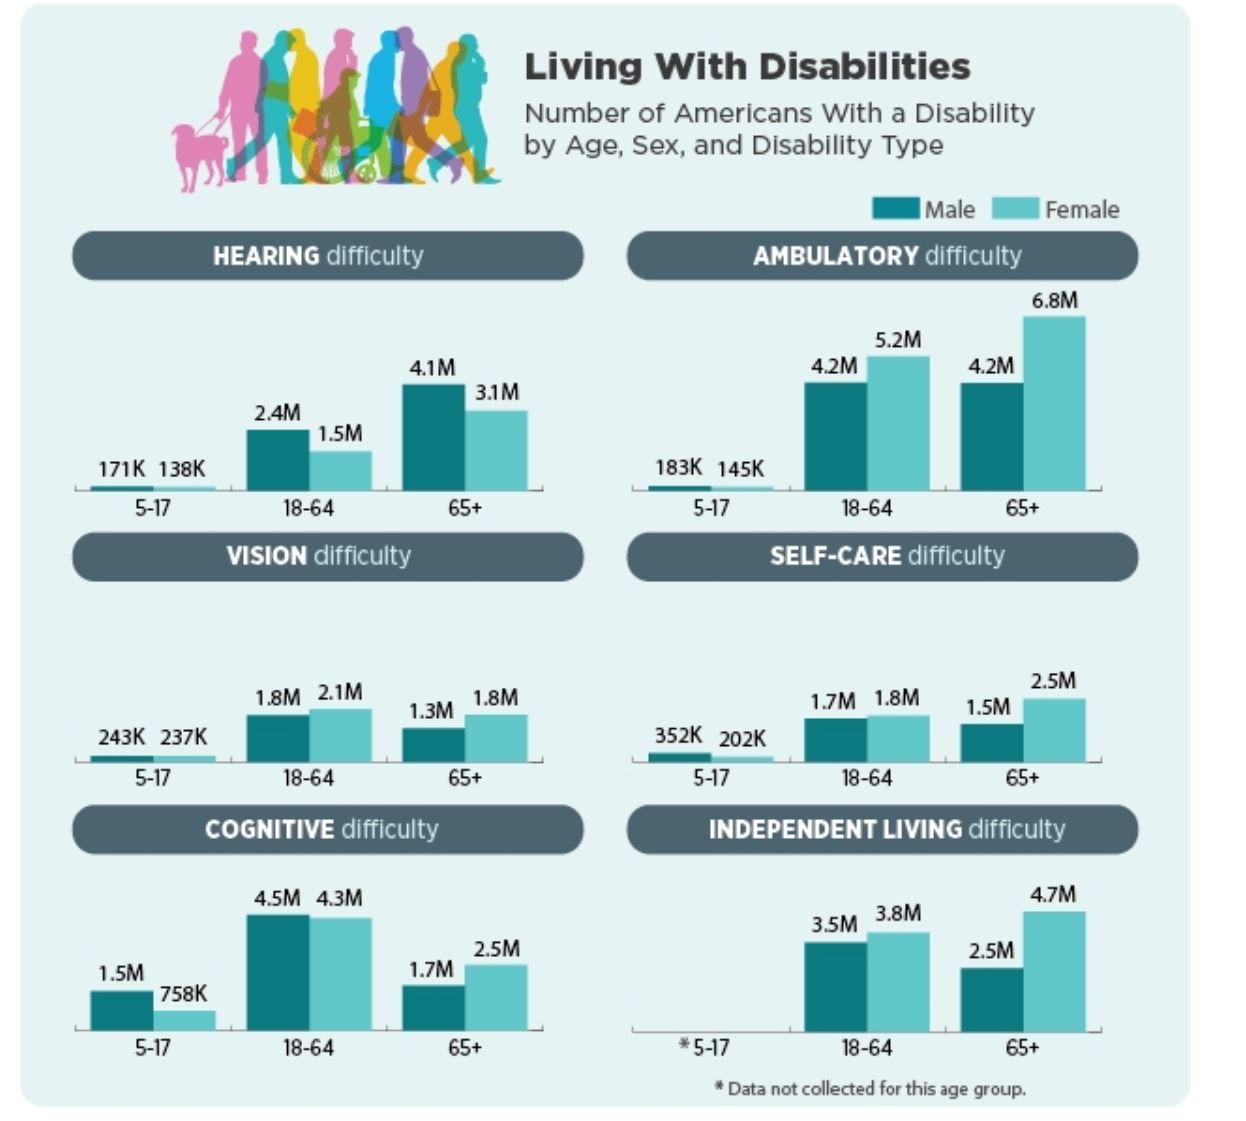 Number of Americans living with disabilites